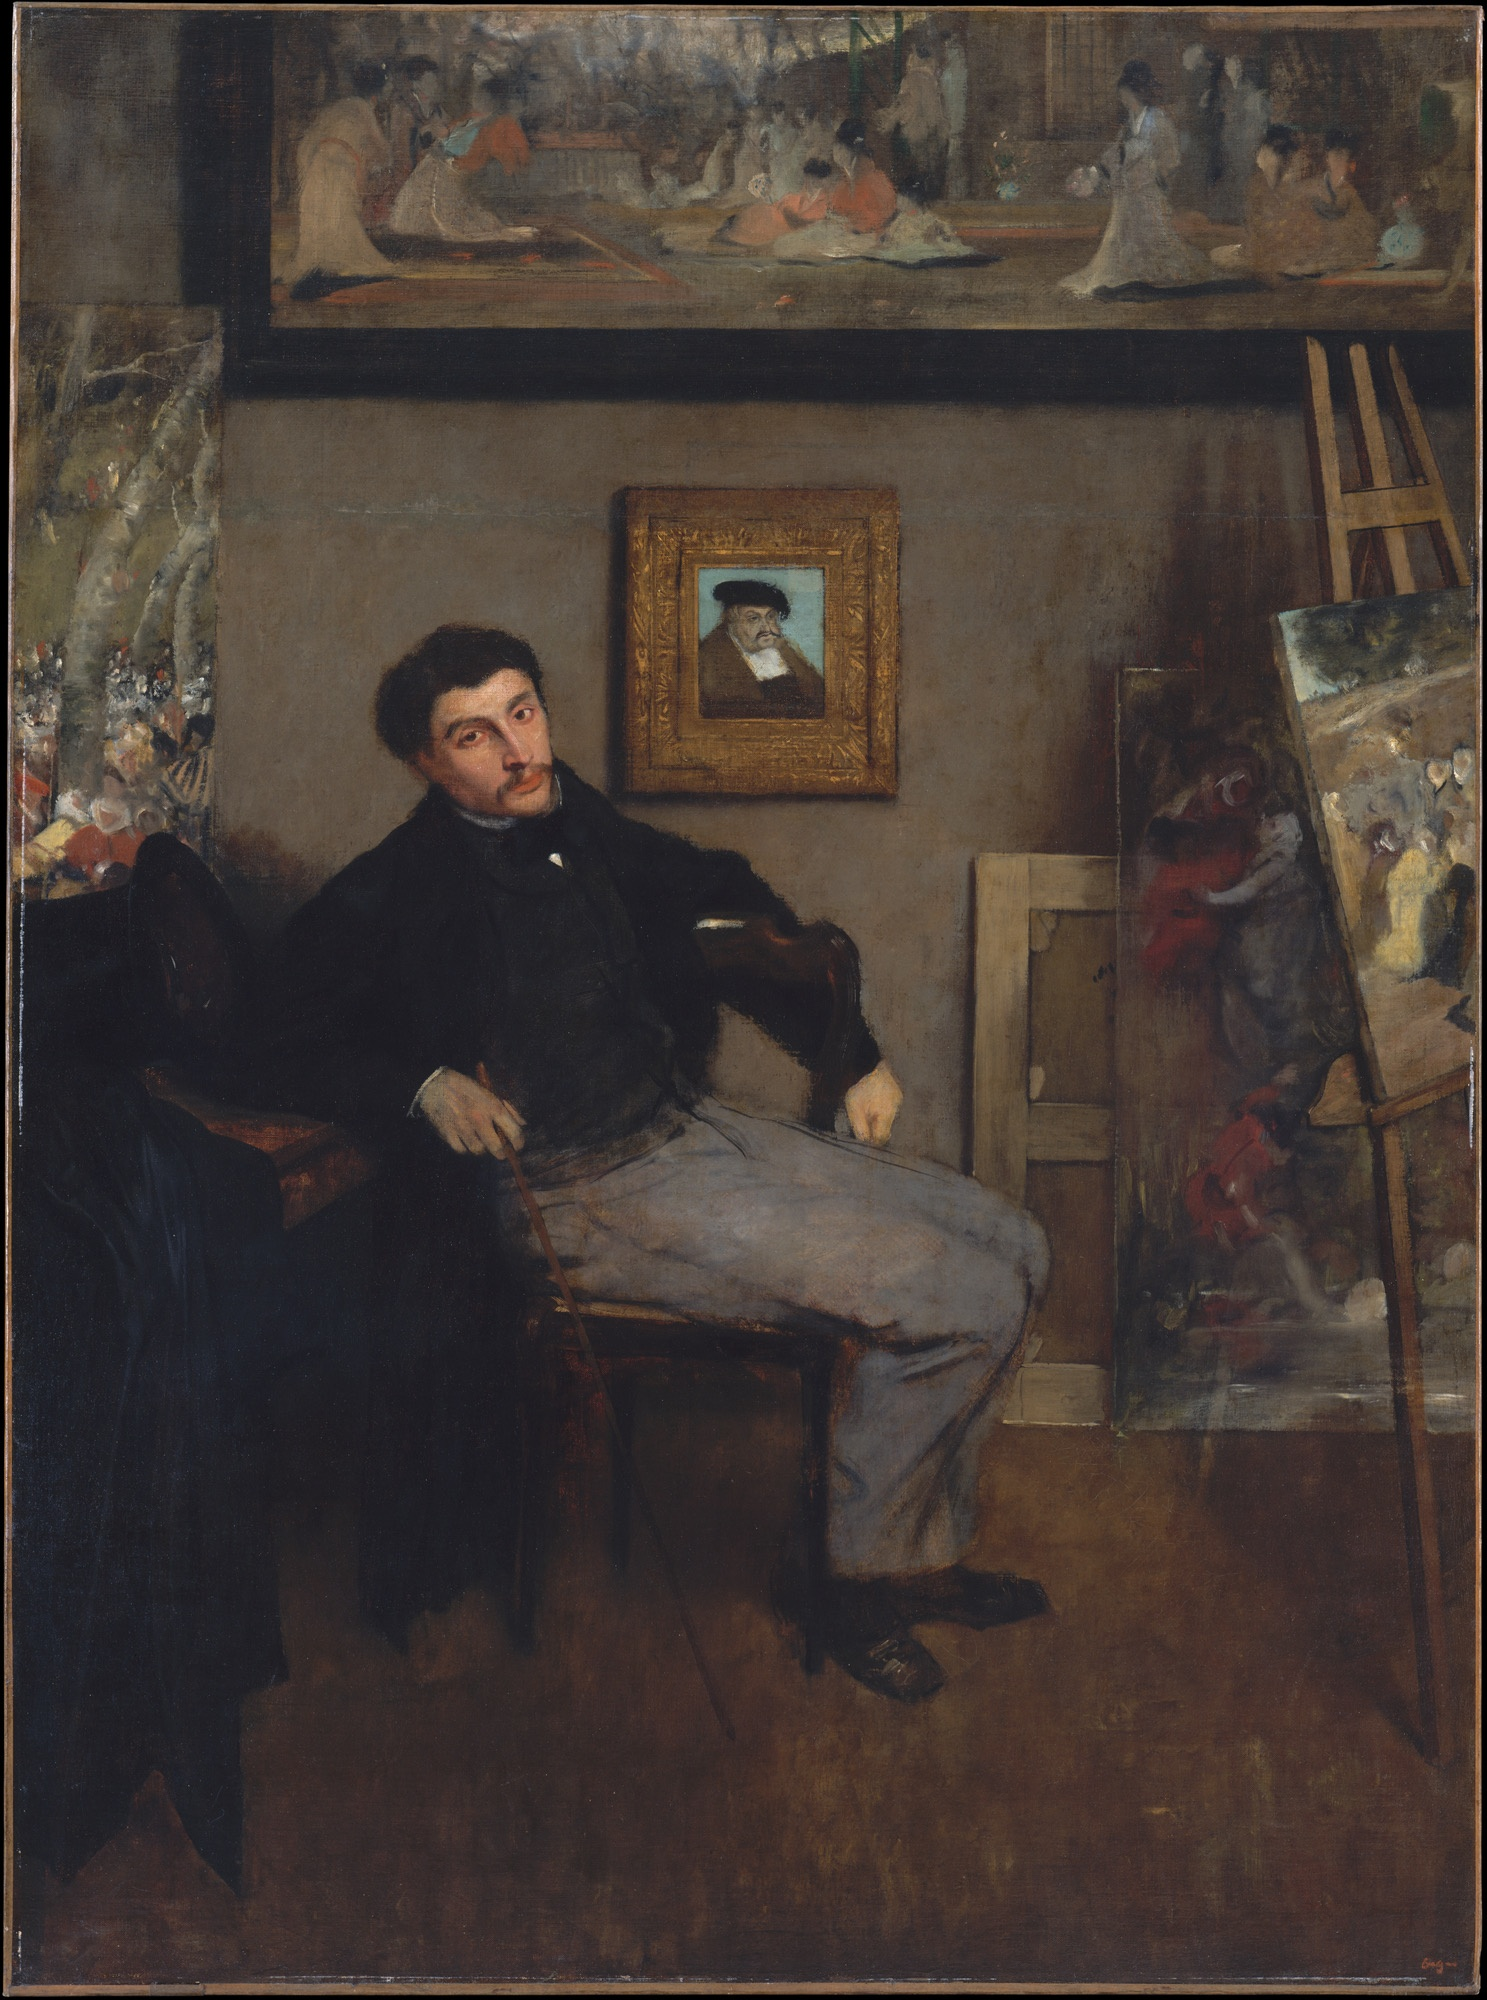 Edgar Degas, portrait de James Tissot, 1867-1869, NY The Metropolitan Muséum of Art